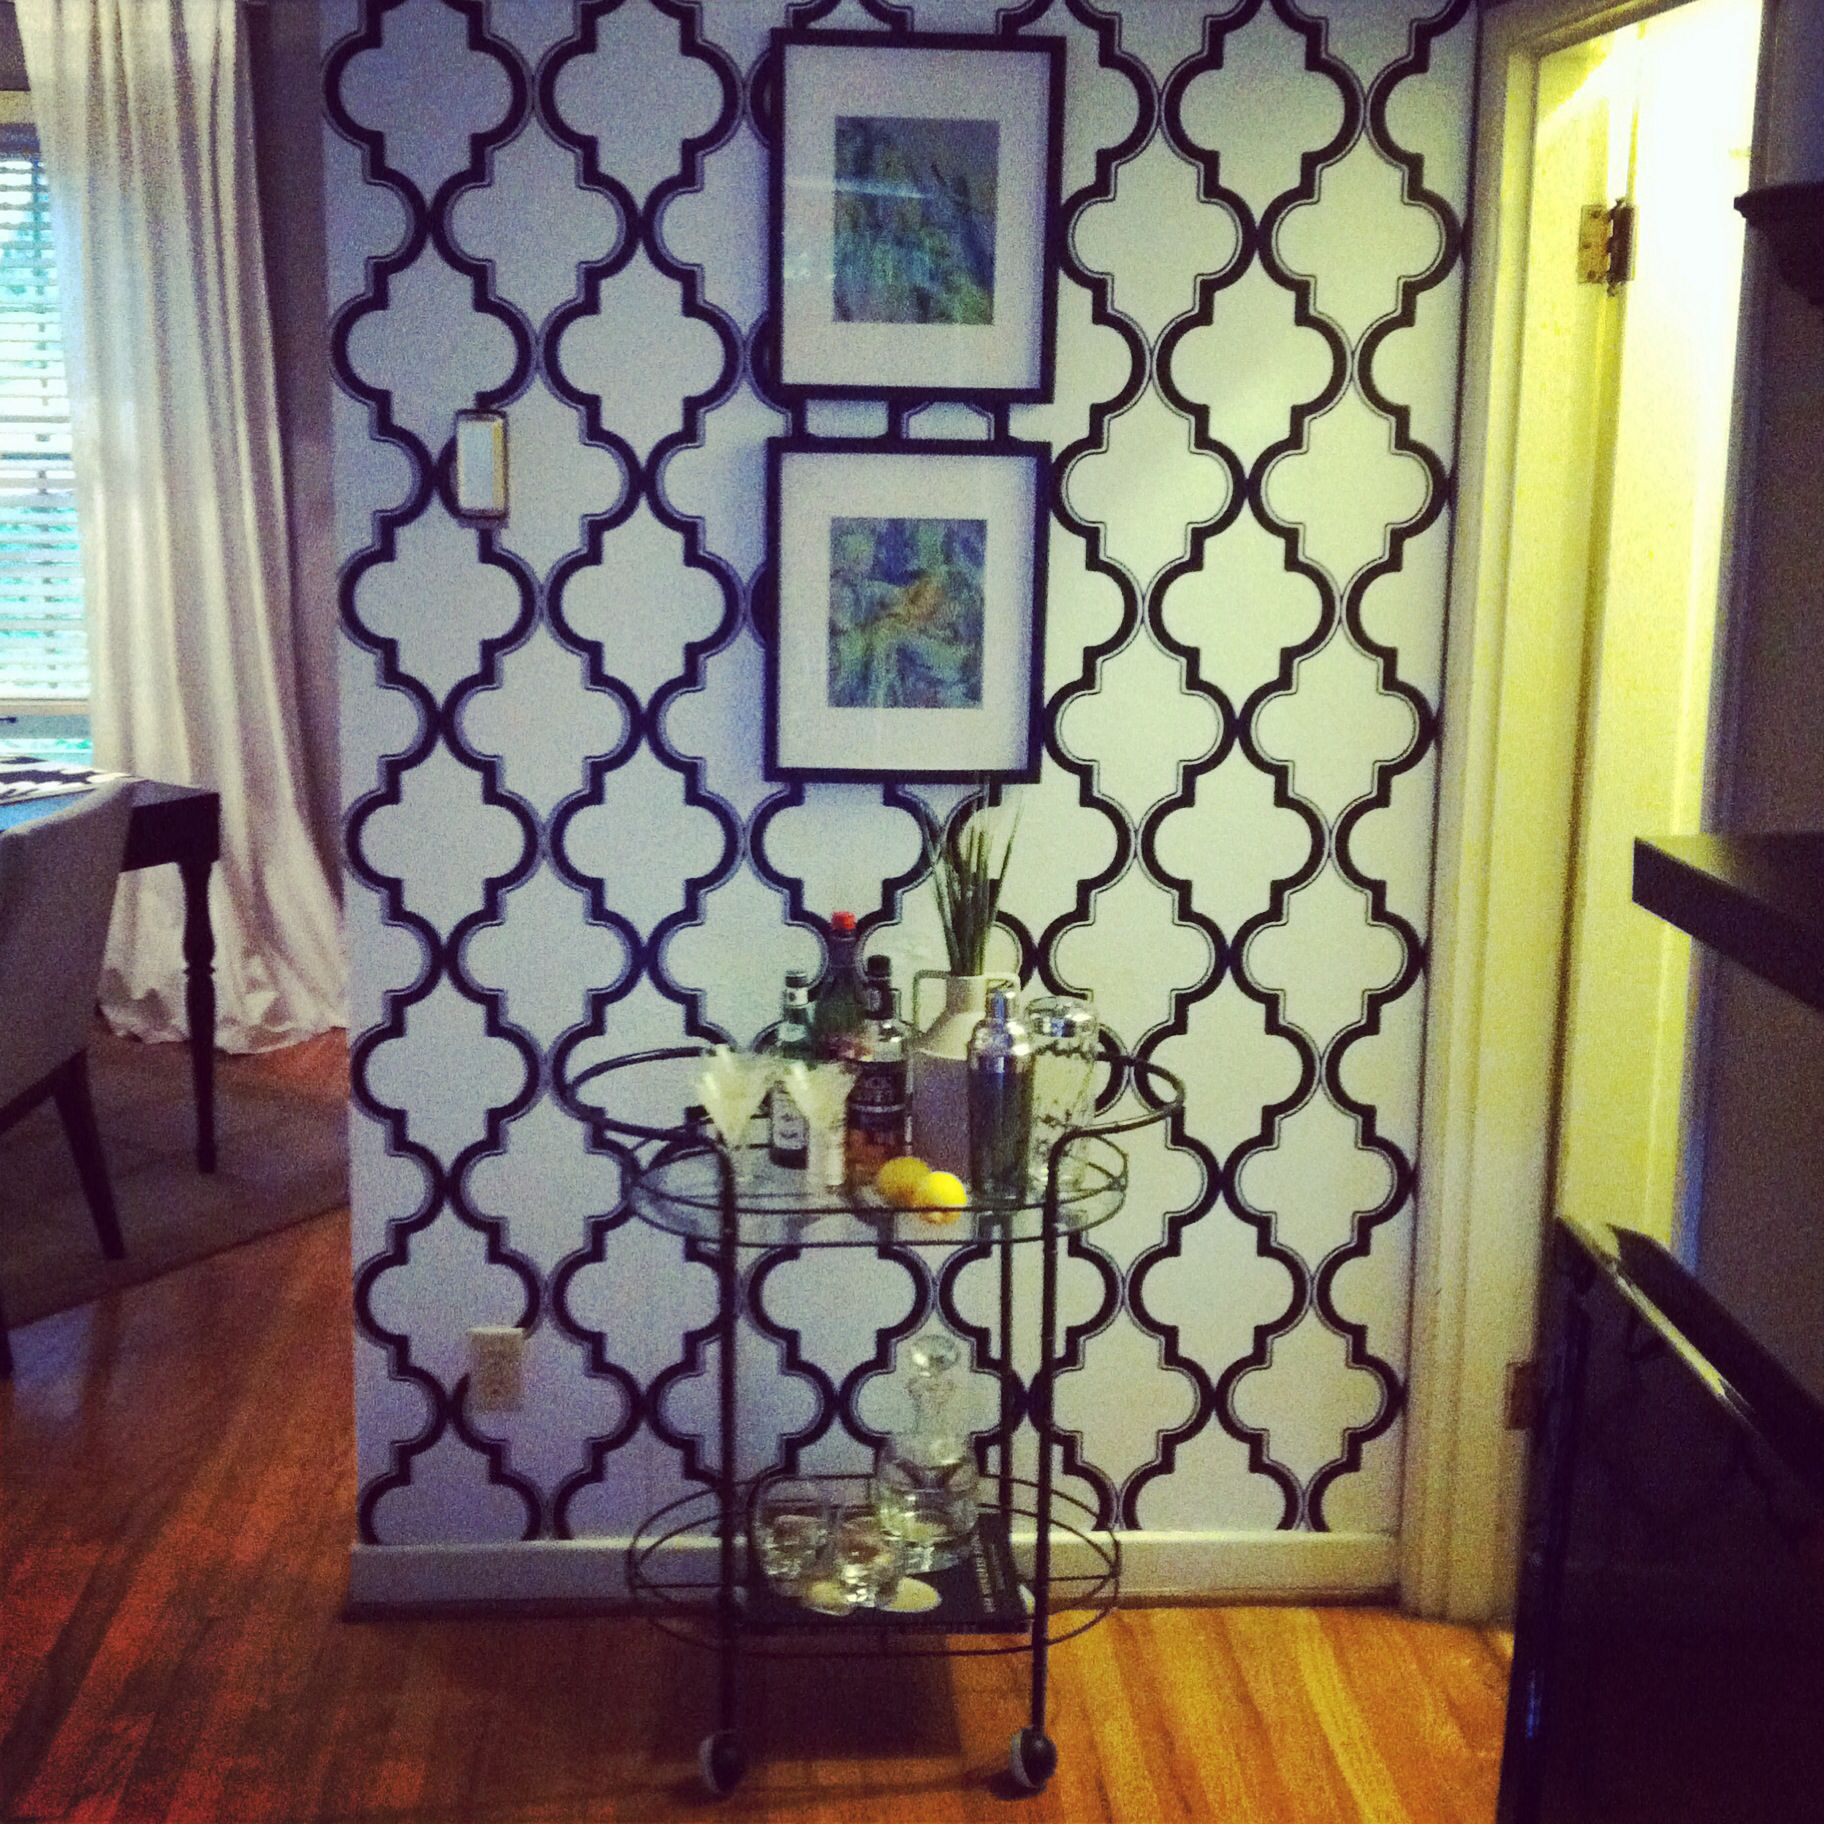 Removable Devine Color wallpaper from target, it's great